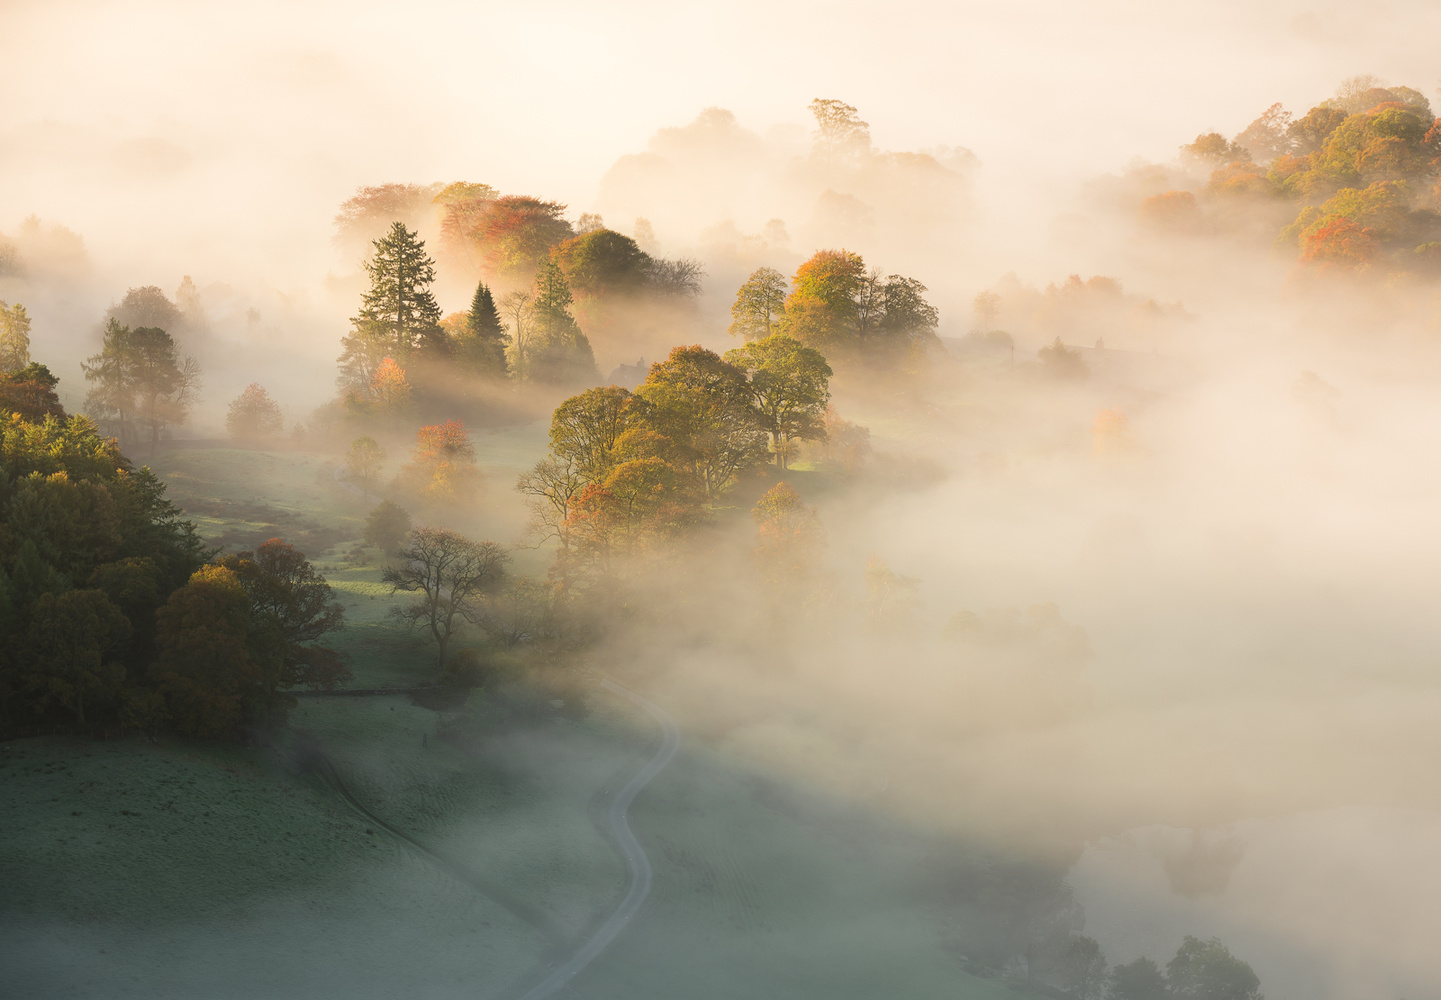 Morning mist in the lake district